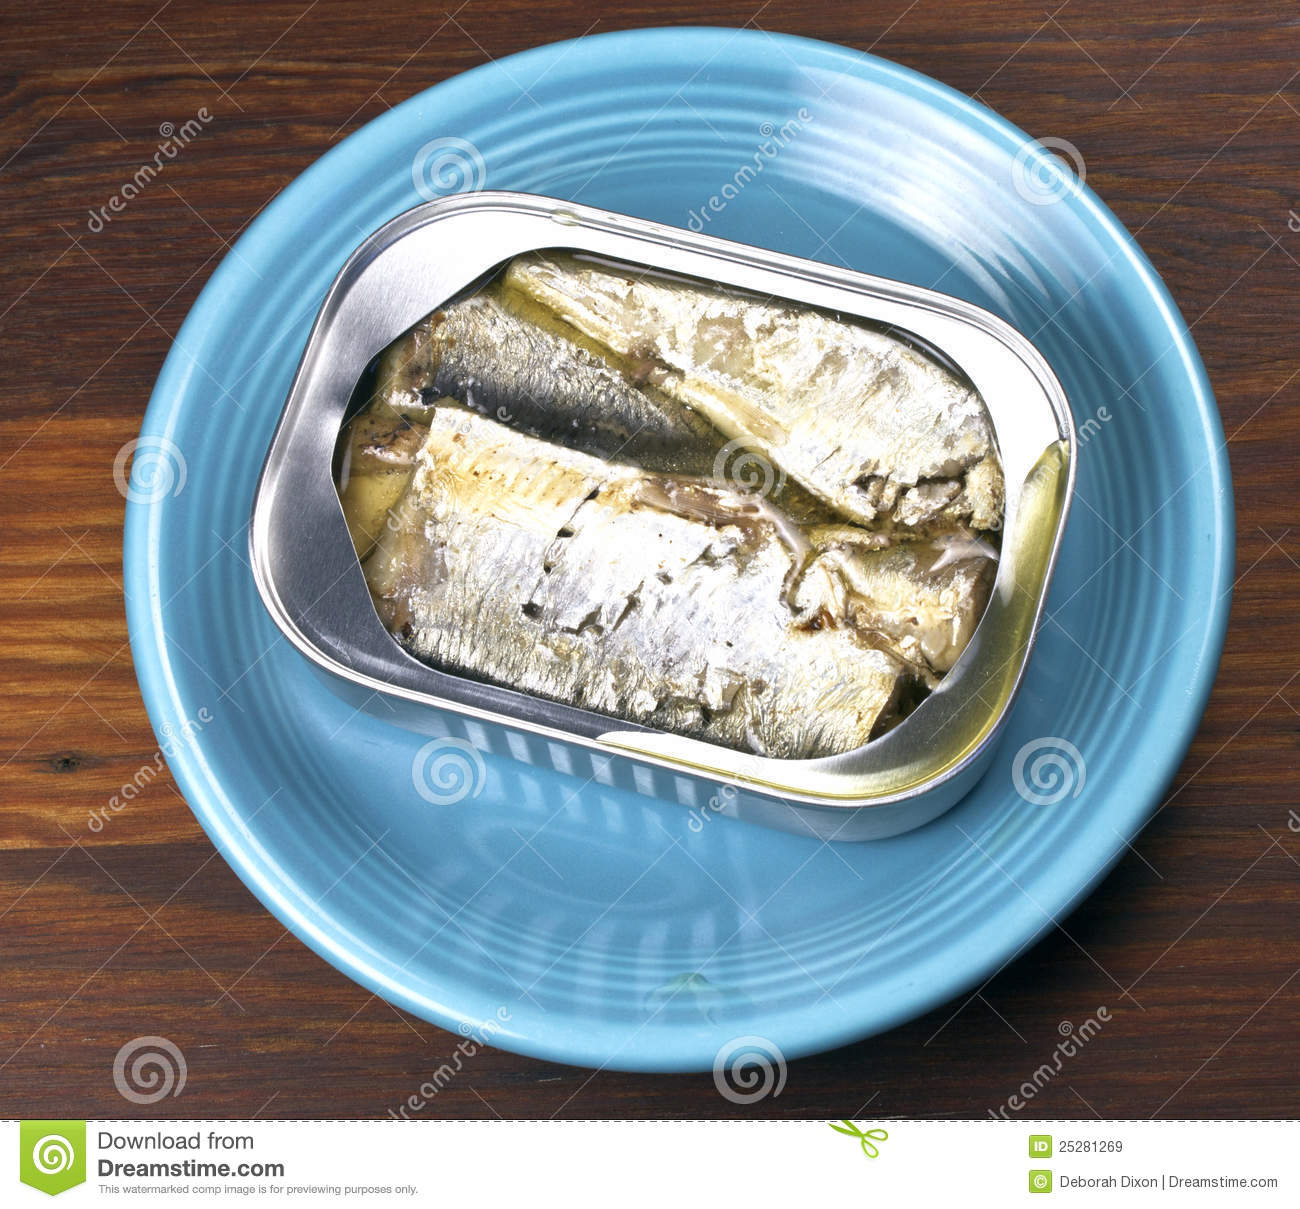 Sardines in an open can